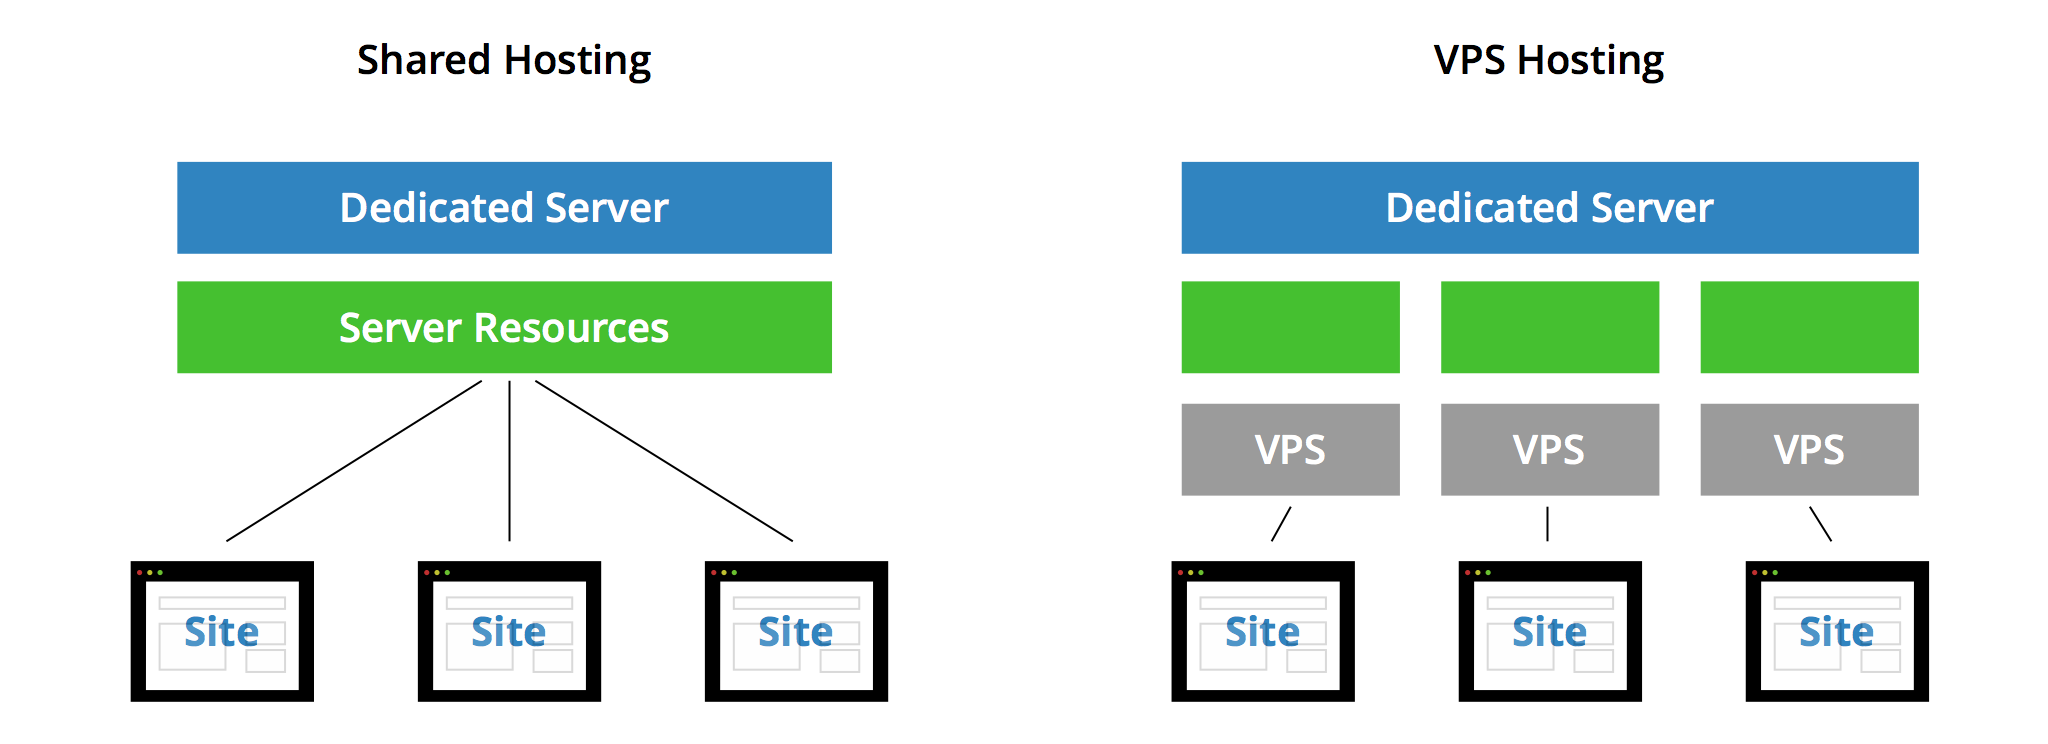 Shared Host vs VPS